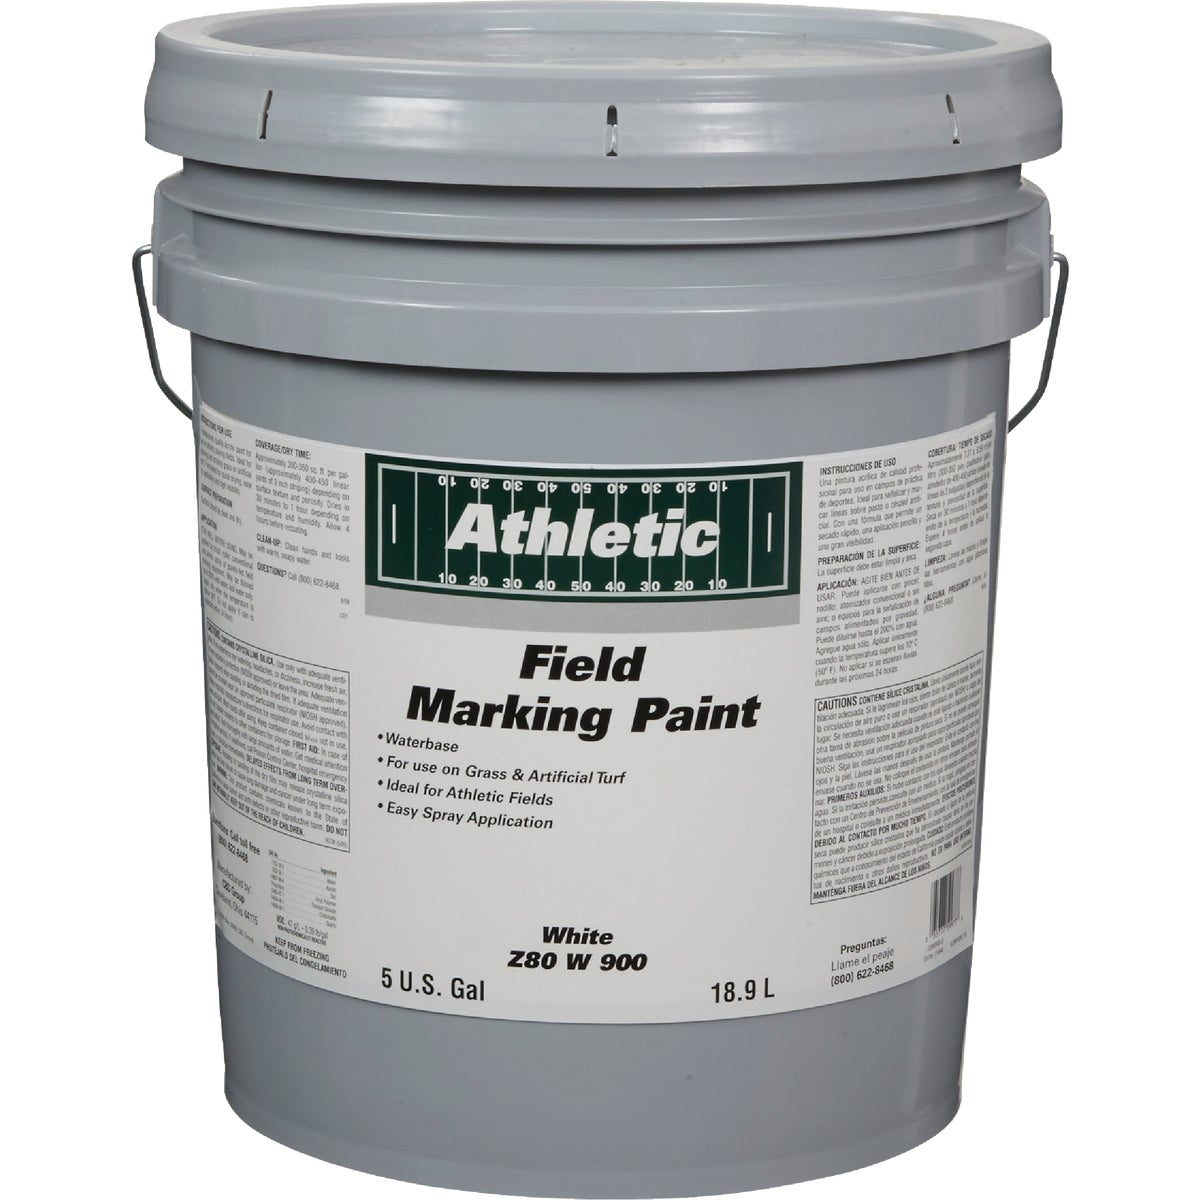 WHT FIELD MARKING PAINT